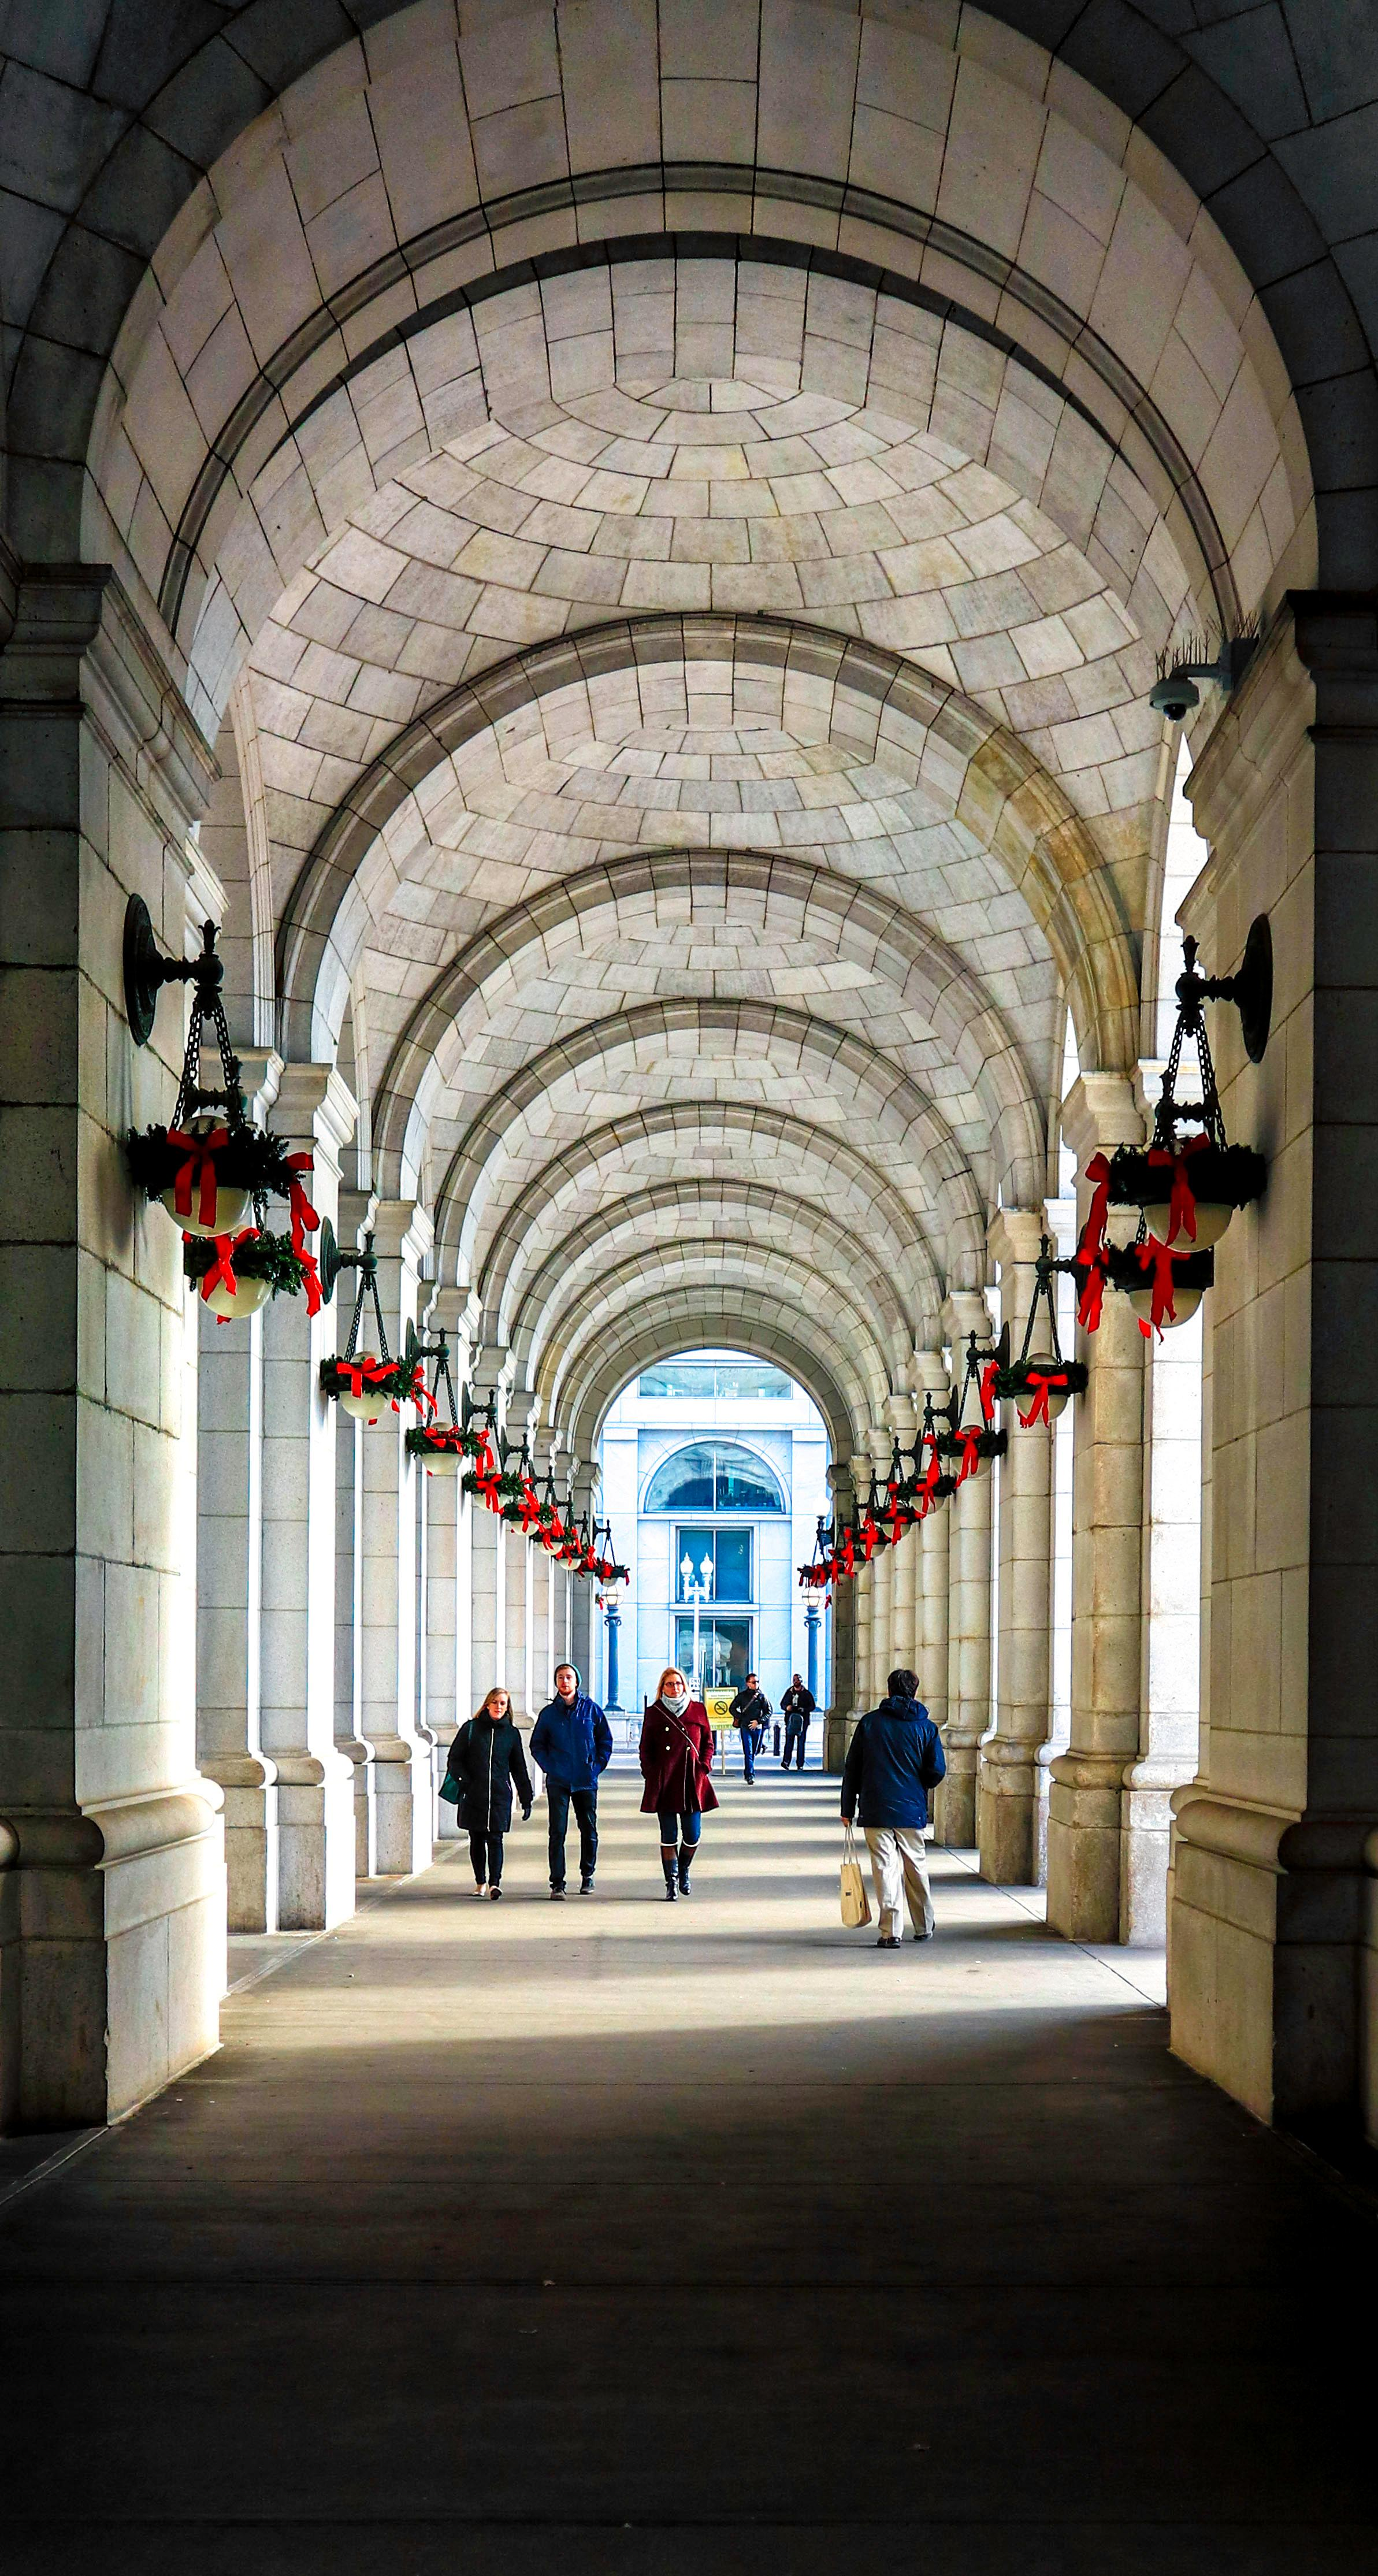 The walkway at Union Station. Taken after getting off the train from Princeton for the holidays. Taken December, 2016. (Image: Adam Brockett)